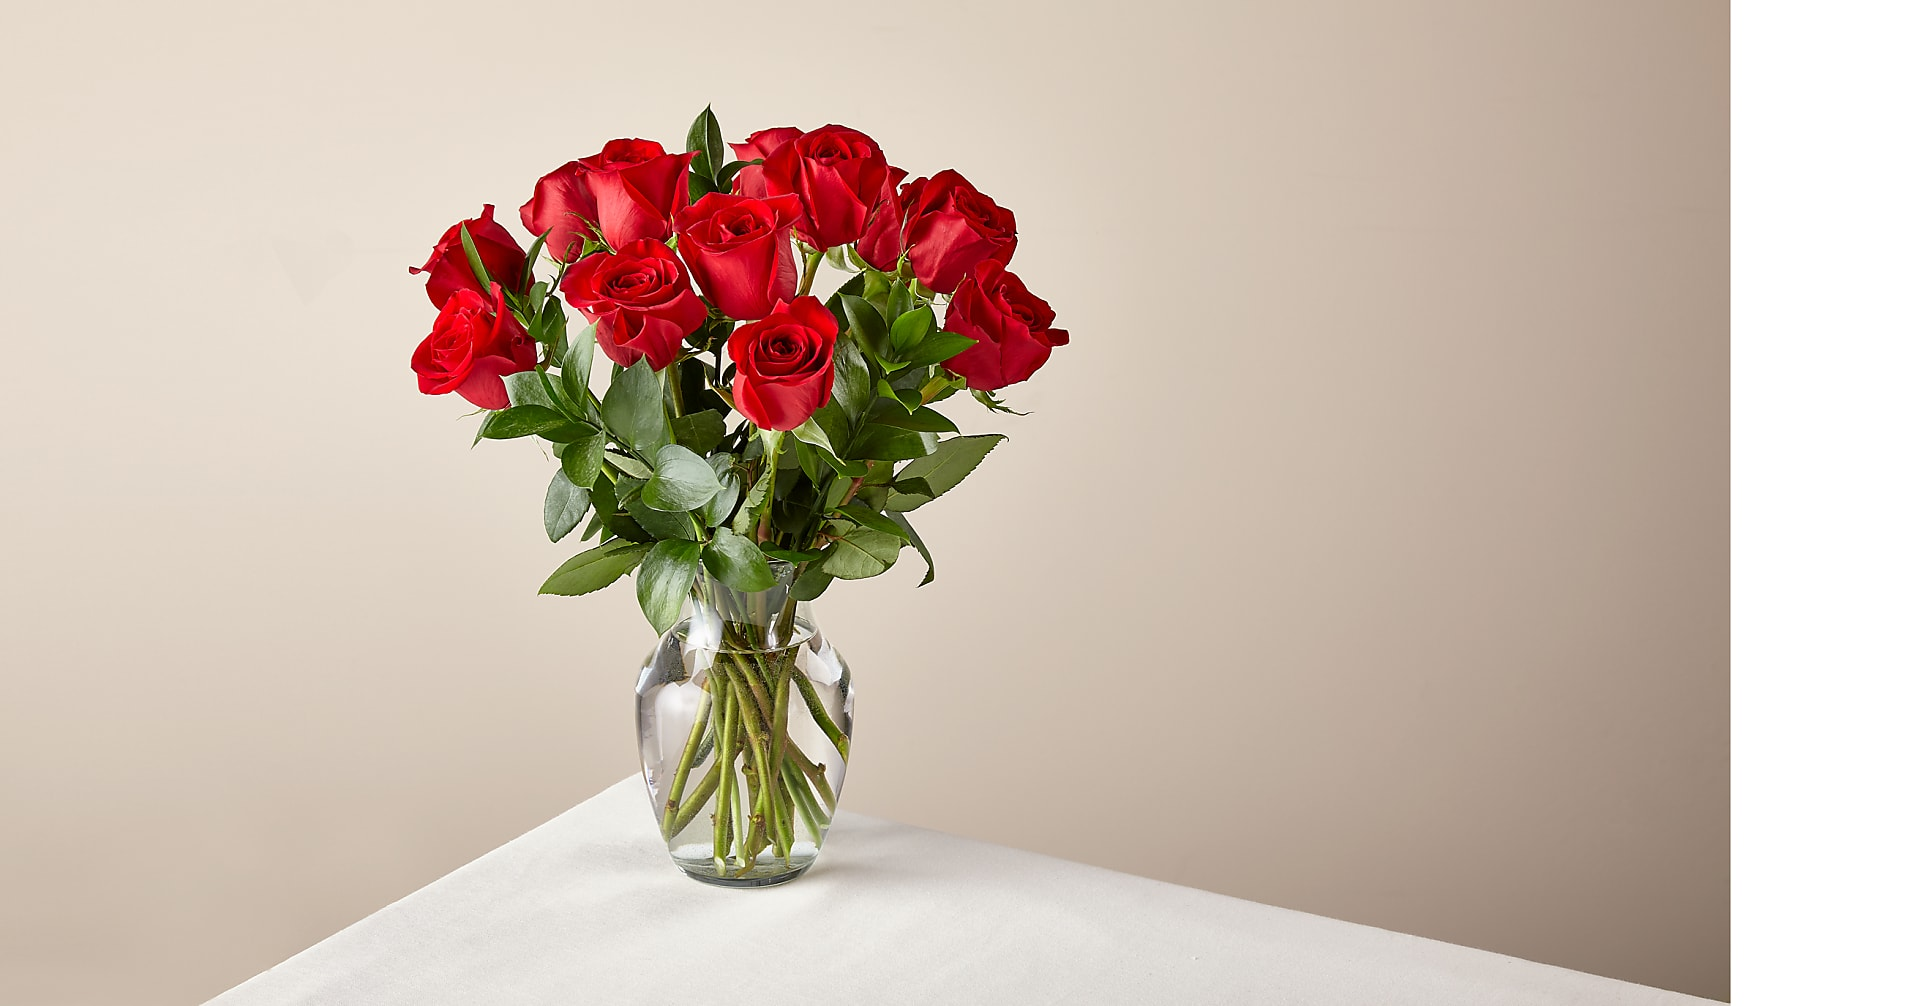 Red Rose Bouquet - Image 1 Of 3